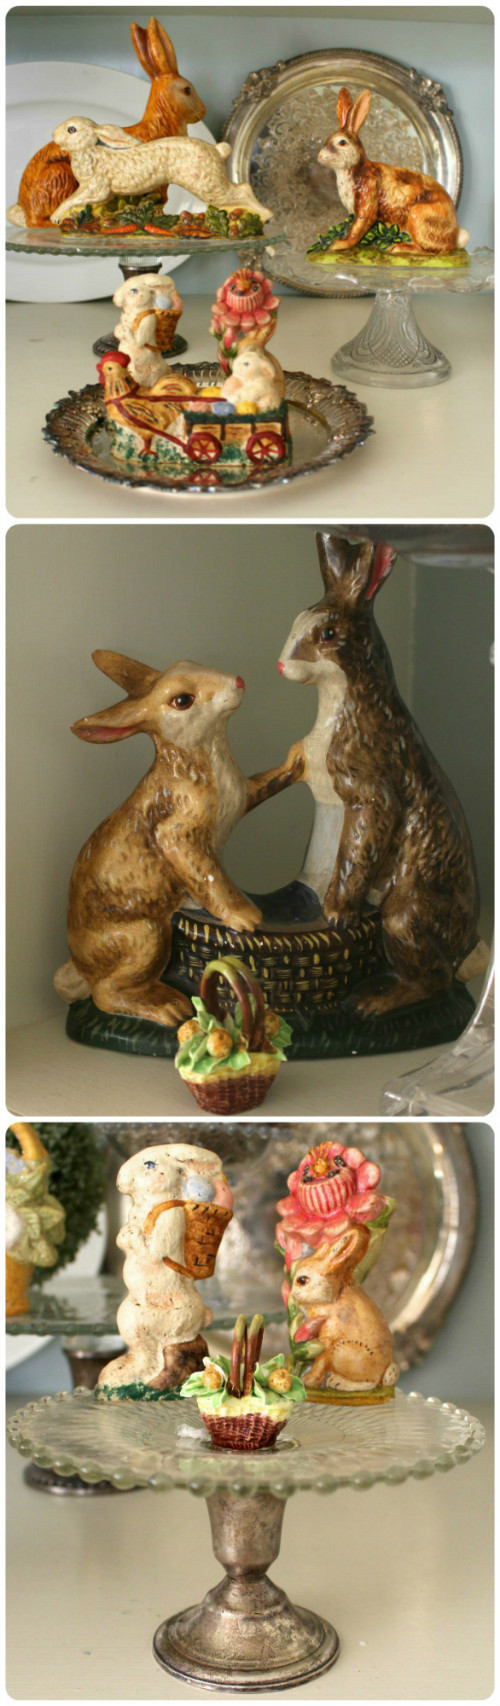 Easter bunny decorating vintage american home for Rabbit decorations home